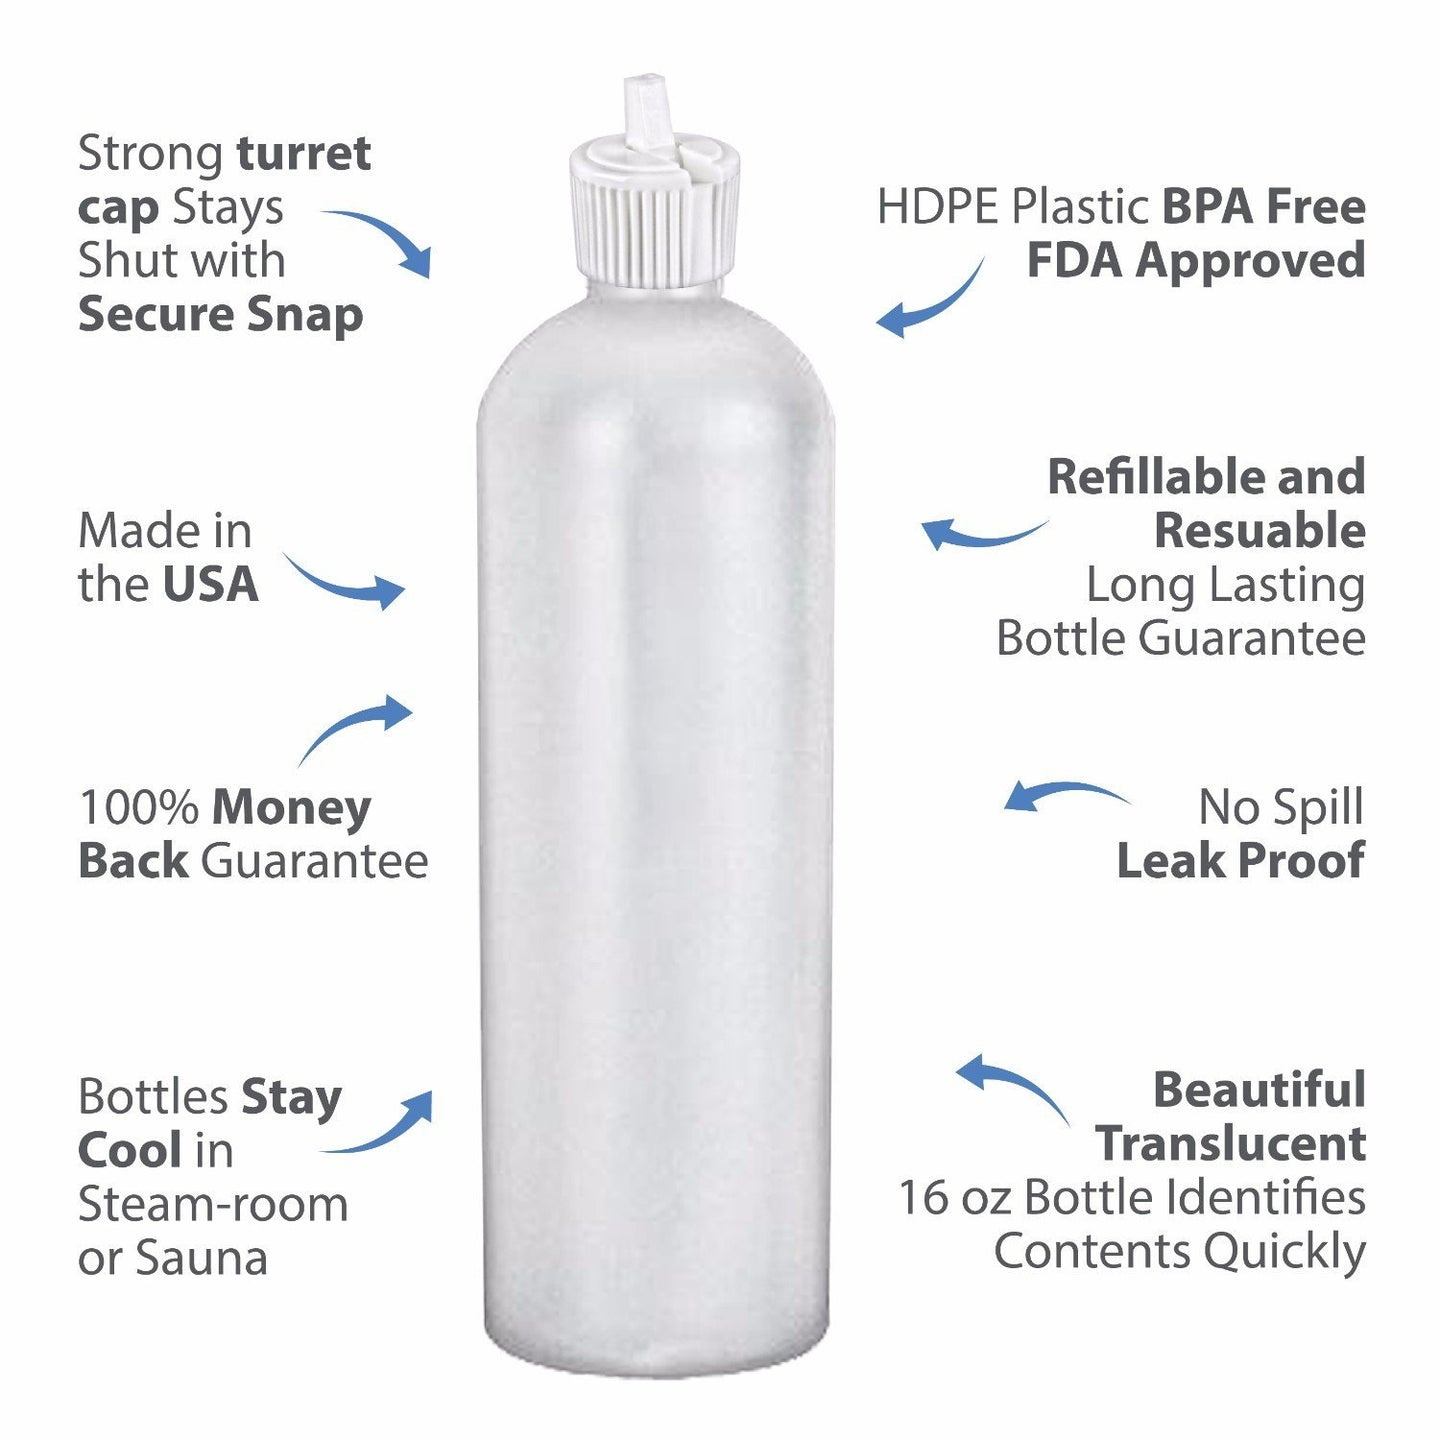 MoYo Natural Labs 16 oz Squirt Bottles, Squeezable Refillable Containers Turret Caps, BPA Free HDPE Plastic for Essential Oils and Liquids, Toiletry/Cosmetic Bottles (Pack of 3, Translucent White)